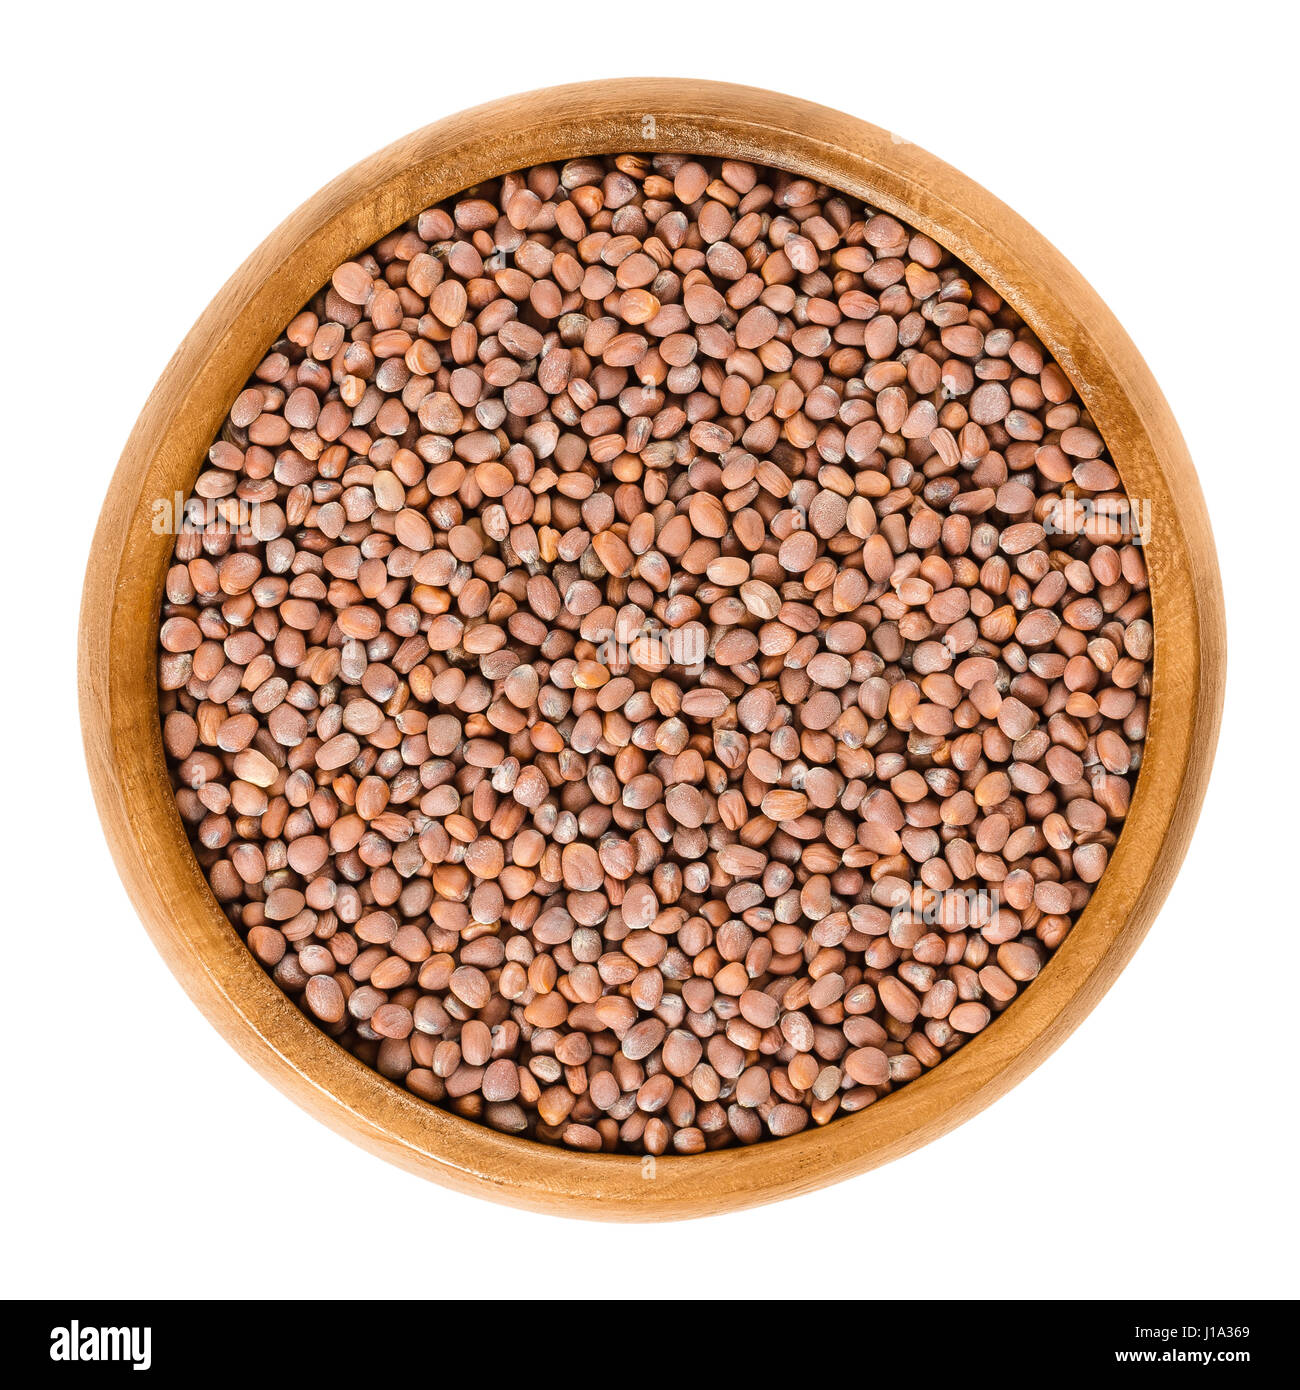 Radish seeds in wooden bowl. Raphanus sativus, an edible root vegetable. Seeds for sprouting with water in a jar - Stock Image